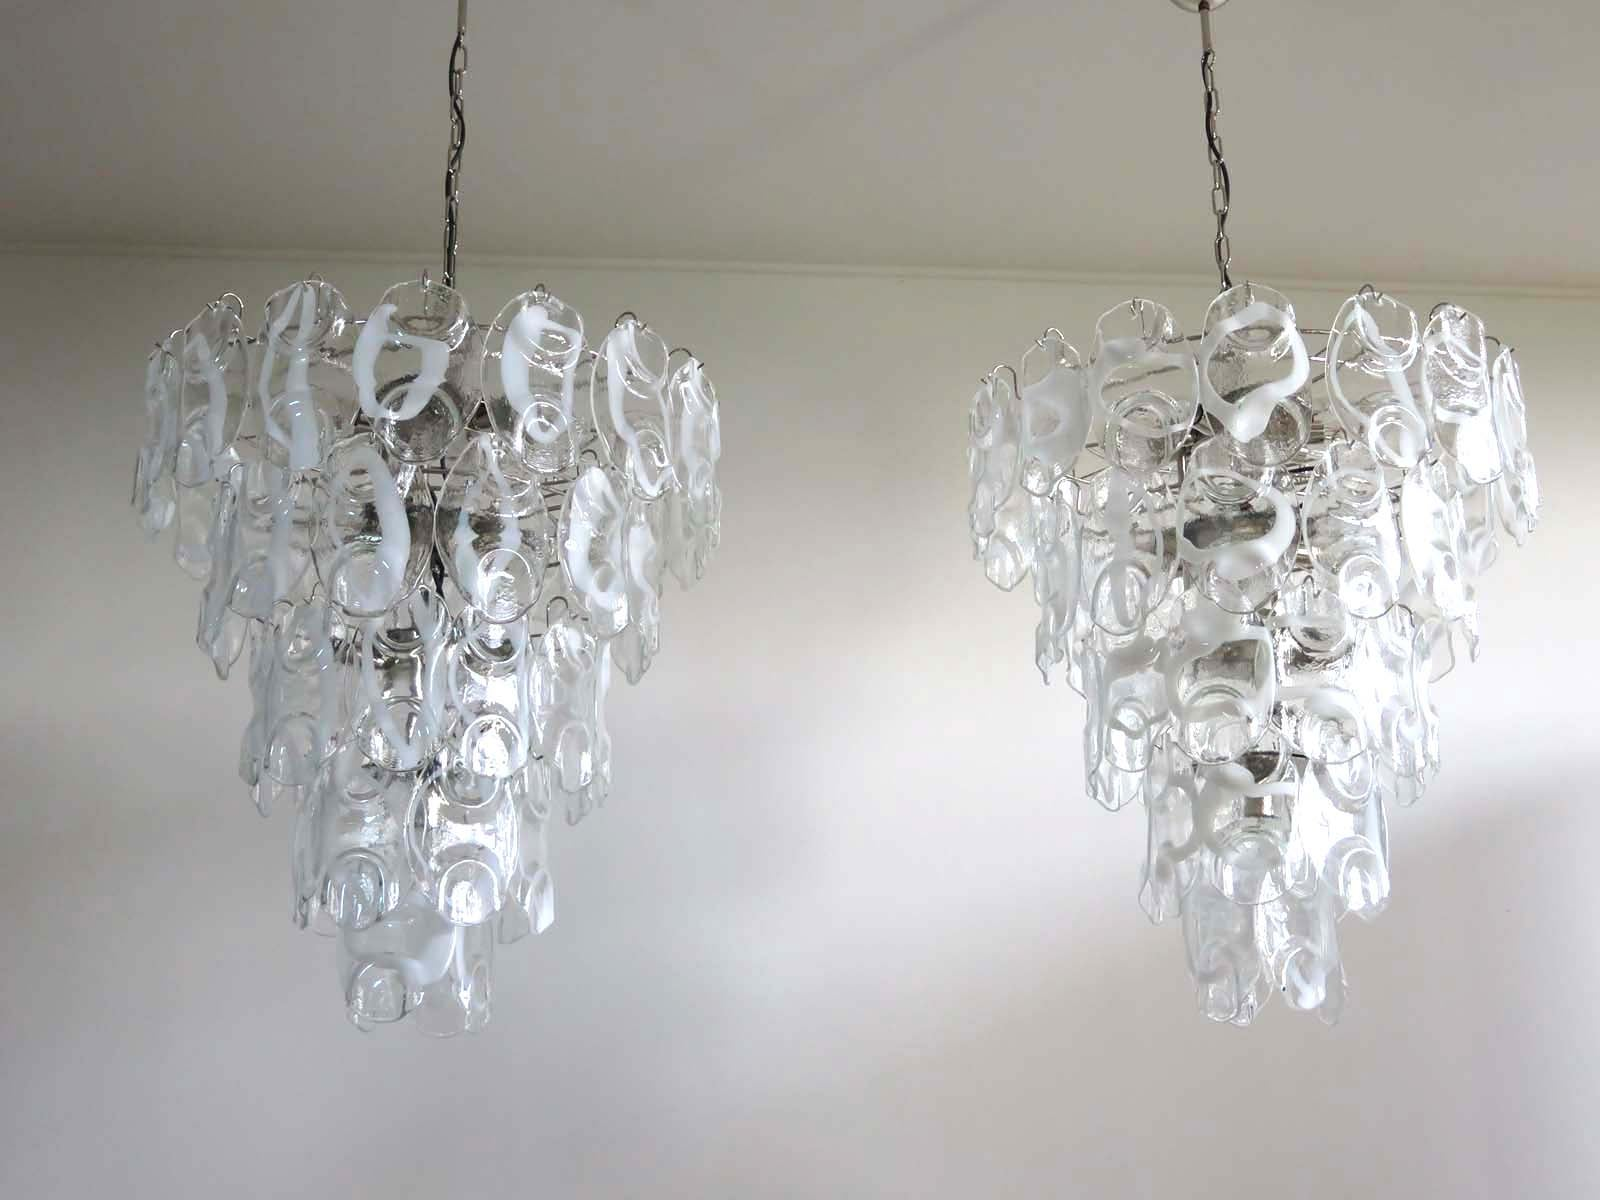 Pair of huge vintage italian murano chandelier lamp by vistosi 50 pair of huge vintage italian murano chandelier lamp by vistosi 50 glasses at 1stdibs aloadofball